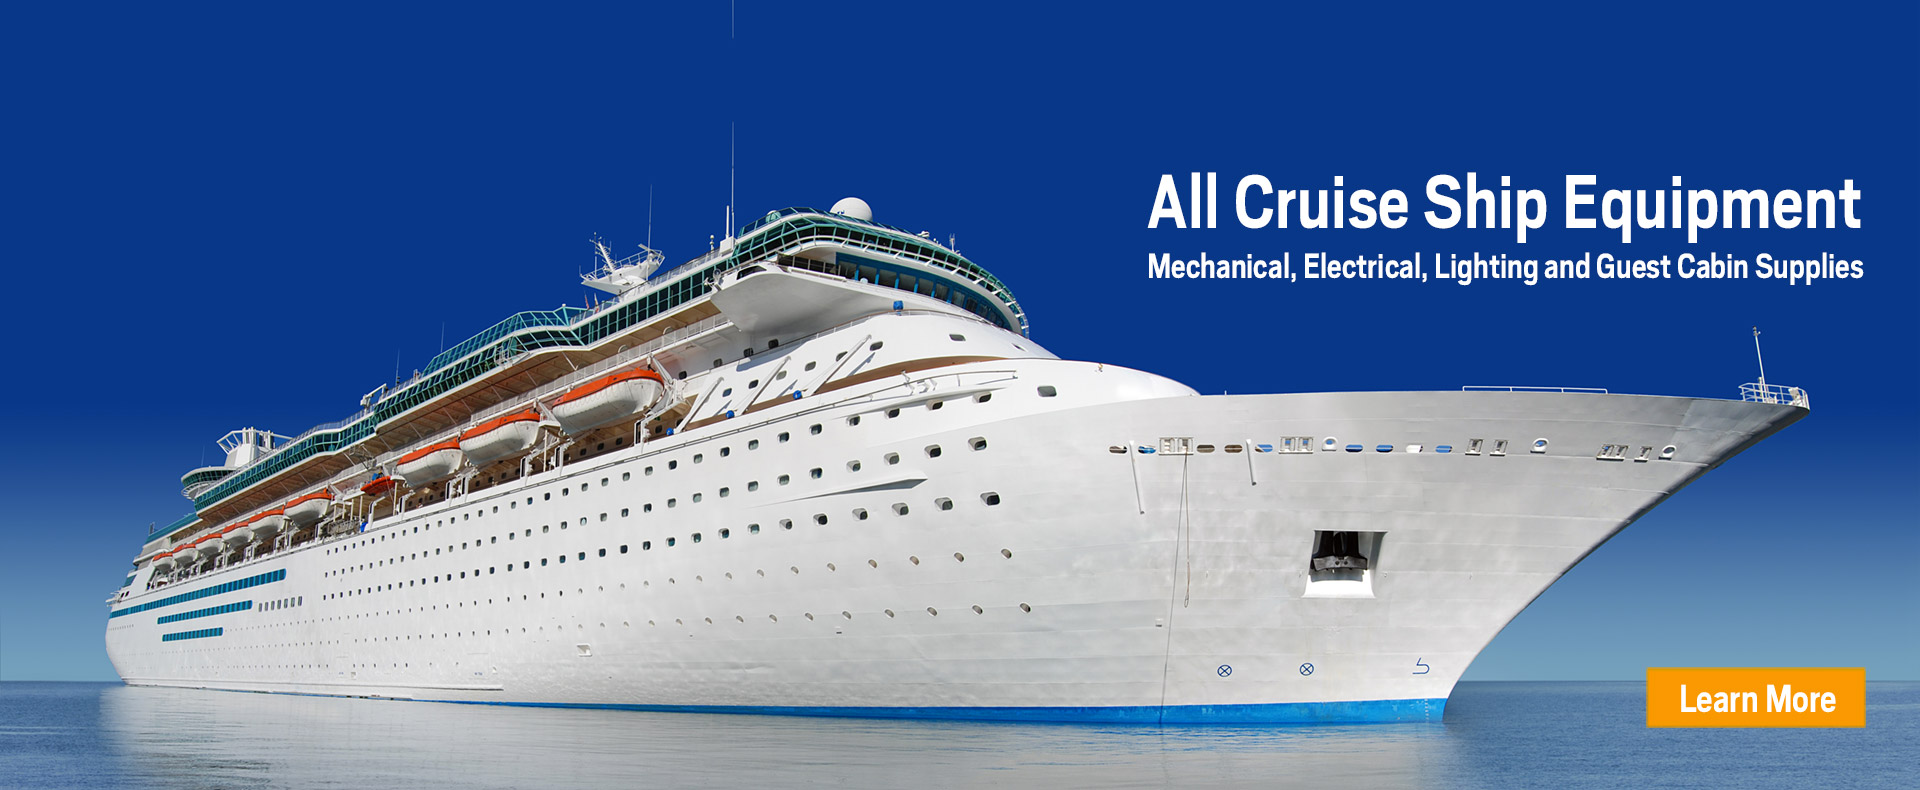 Marine Equipment And Supplies For The Cruise Industry MSP - Cruise ship supplies